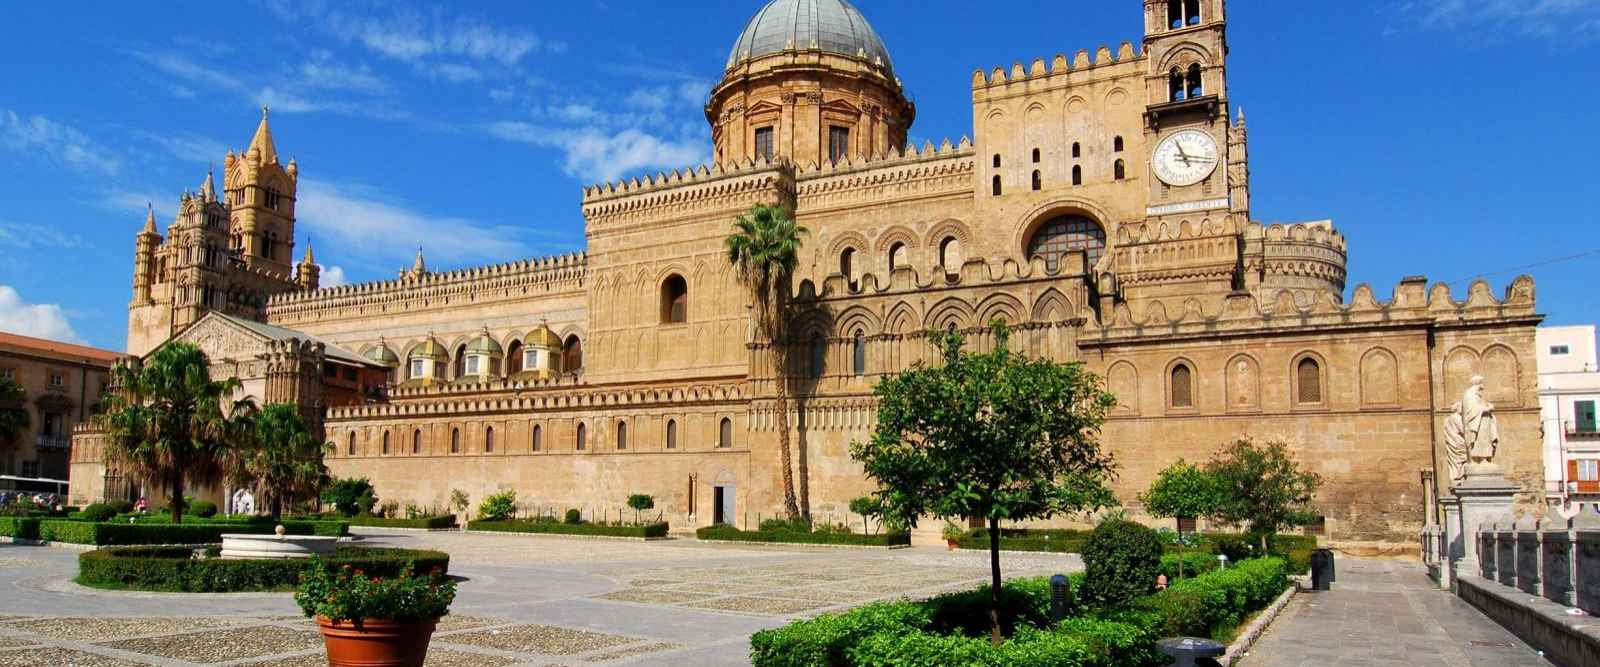 half day taxi tour to monreale and palermo from palermo port tour